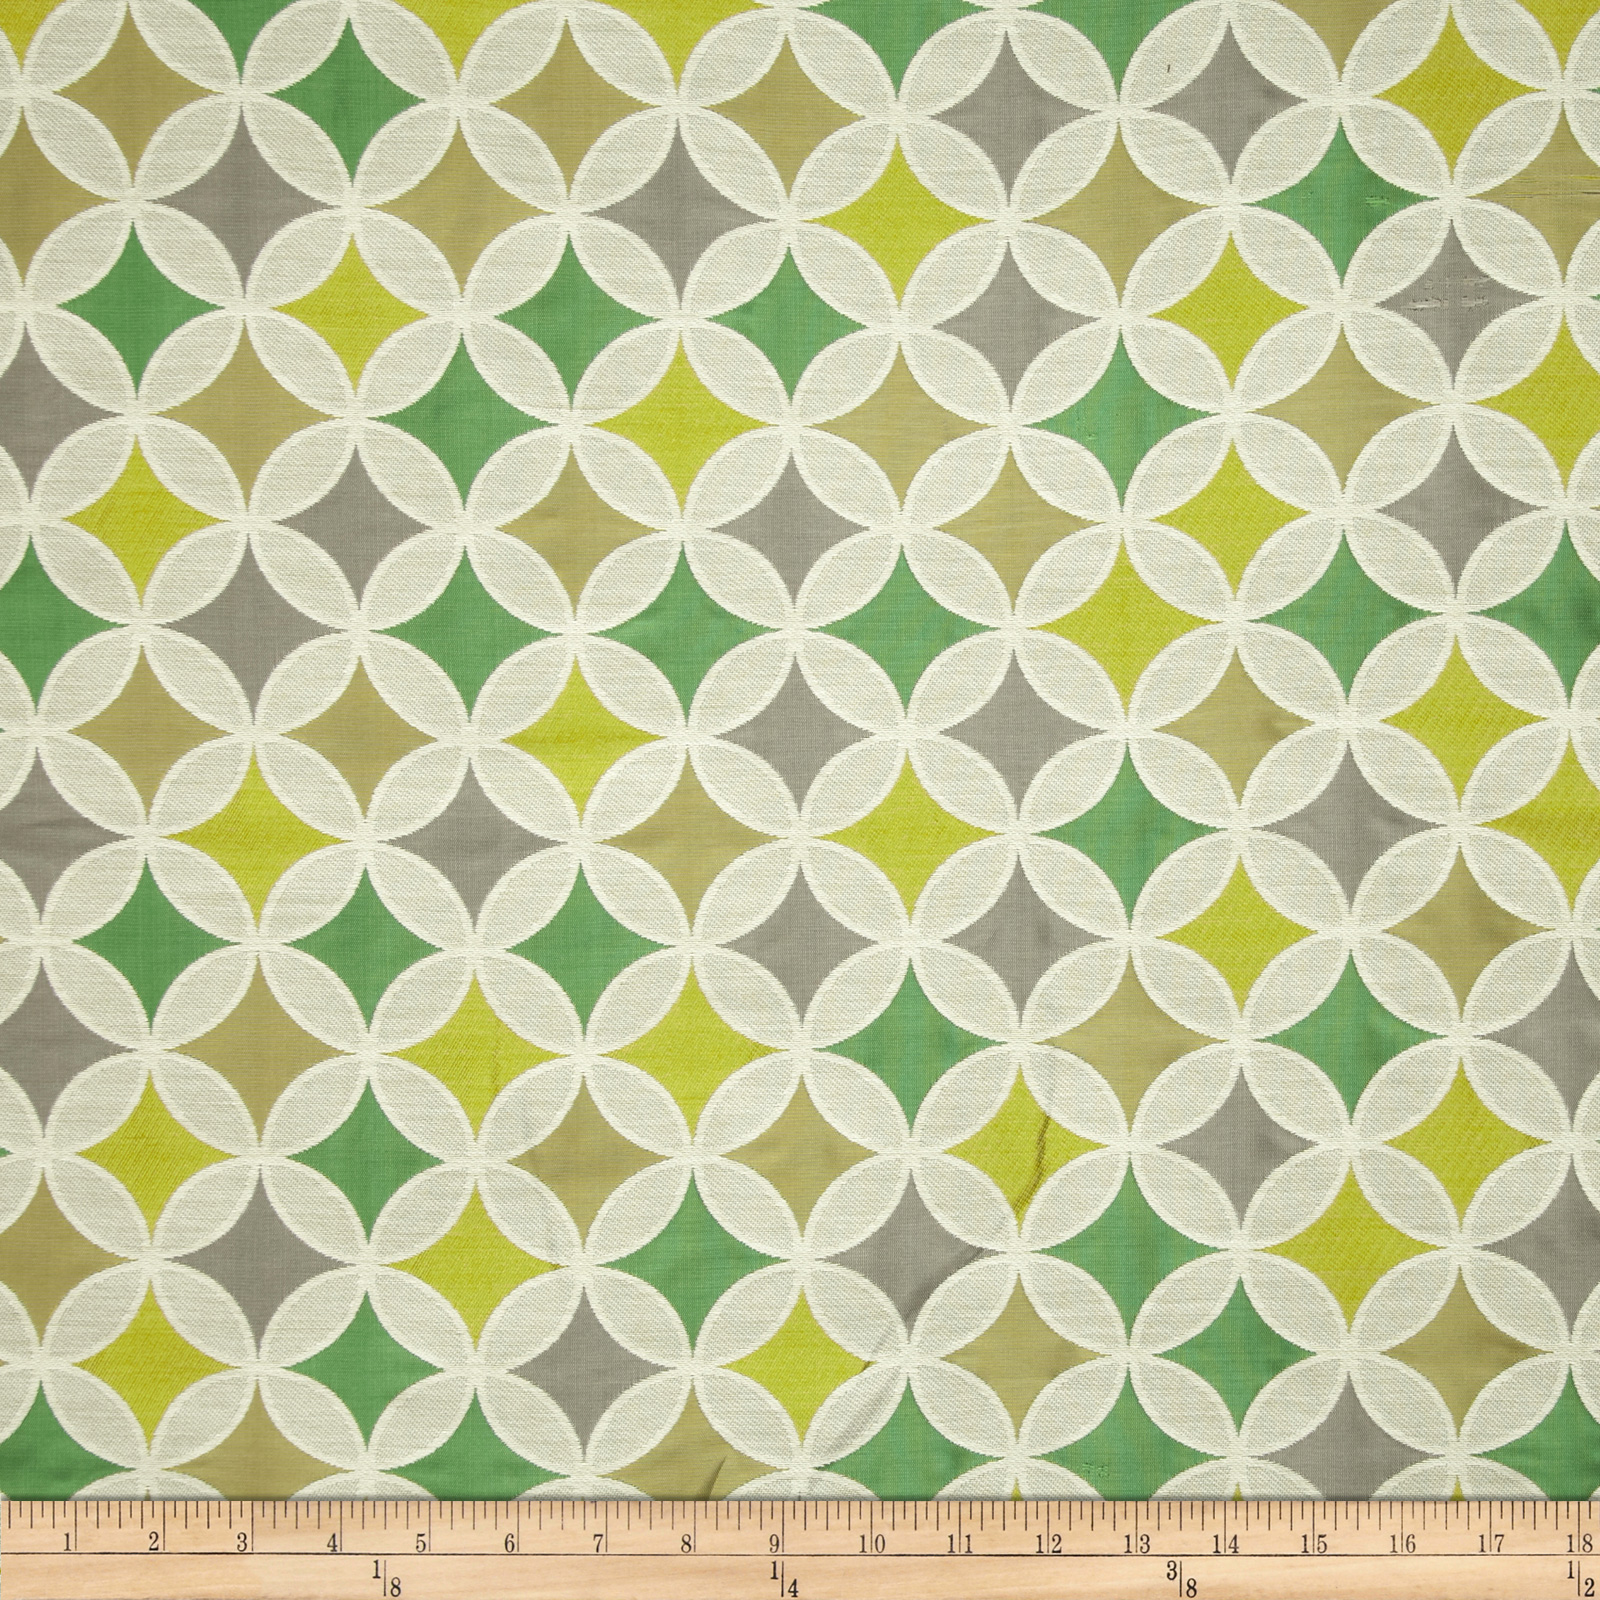 Richloom Amber Jacquard Lawn Fabric by TNT in USA